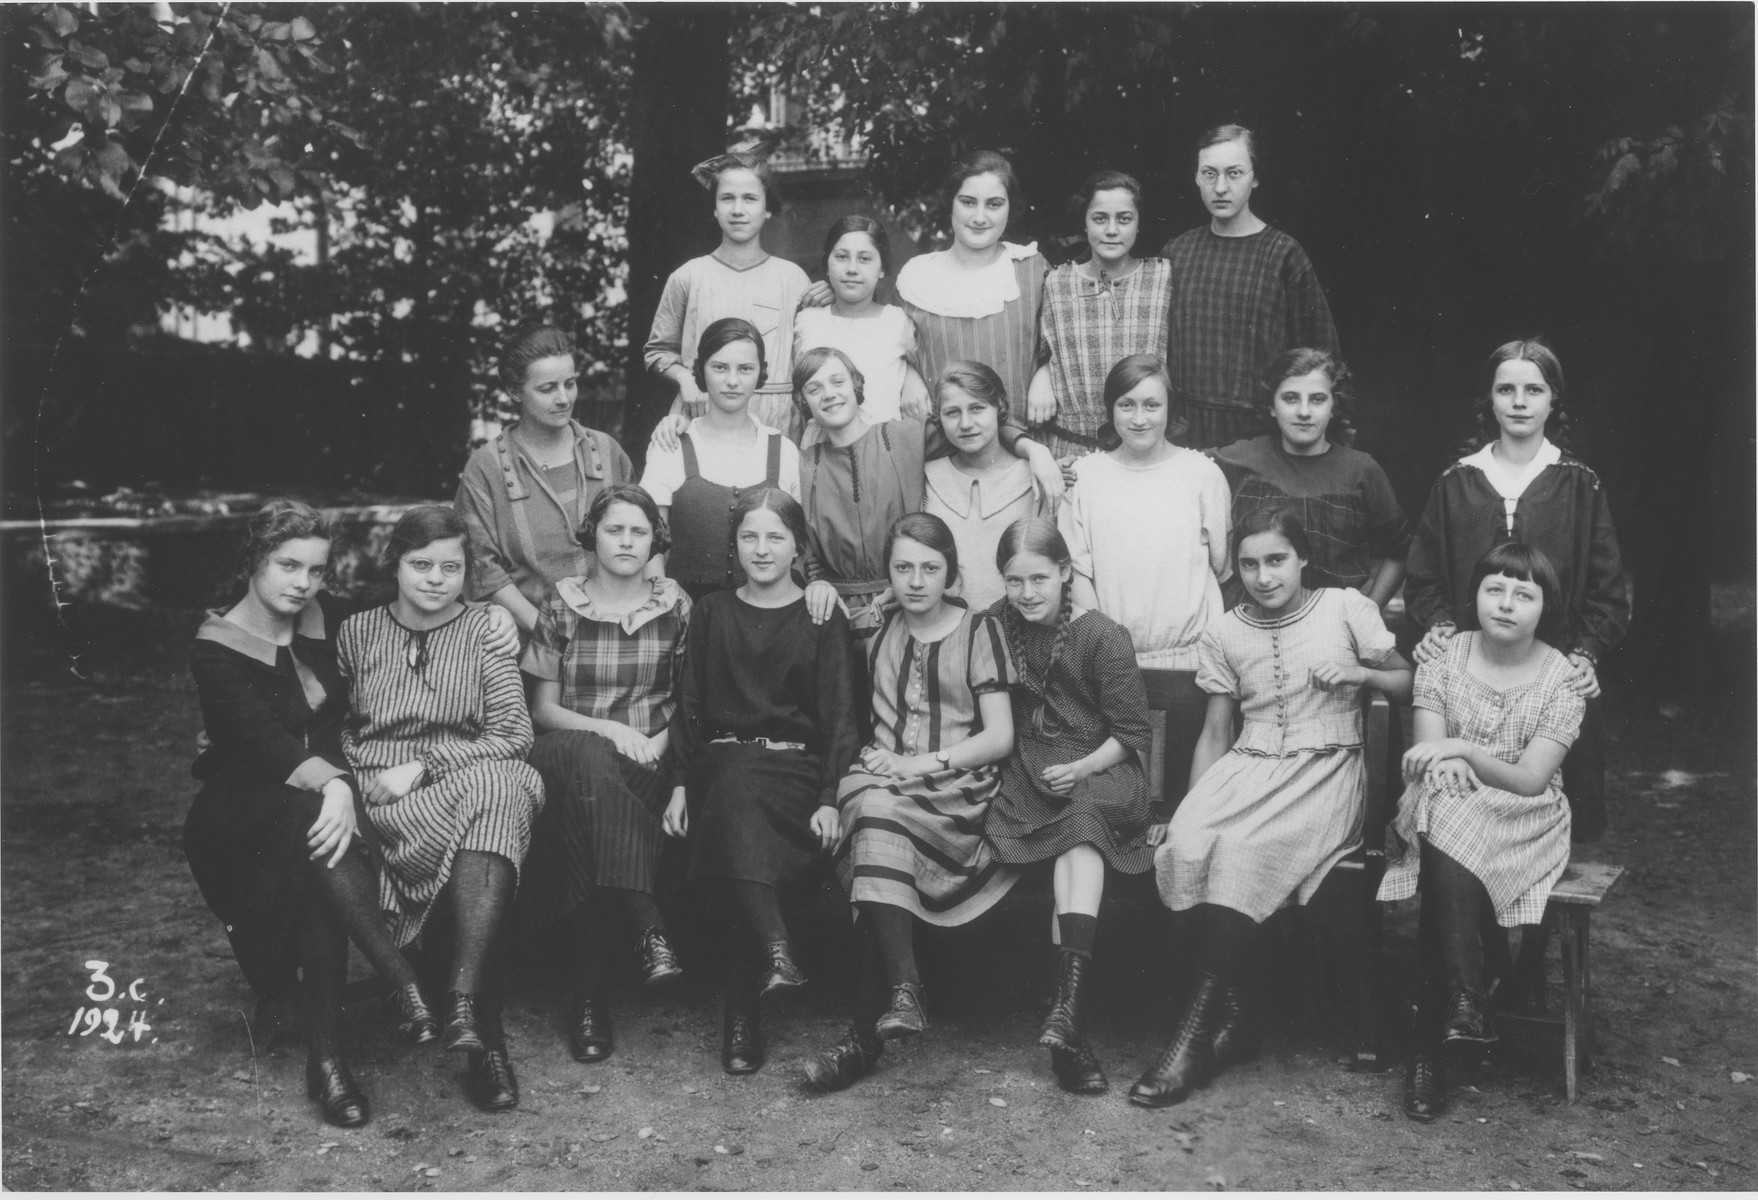 Group portrait of girls in the thrid form at a school in Guntersblum, Germany.  Among those pictured is Hede Rube (top row, center).